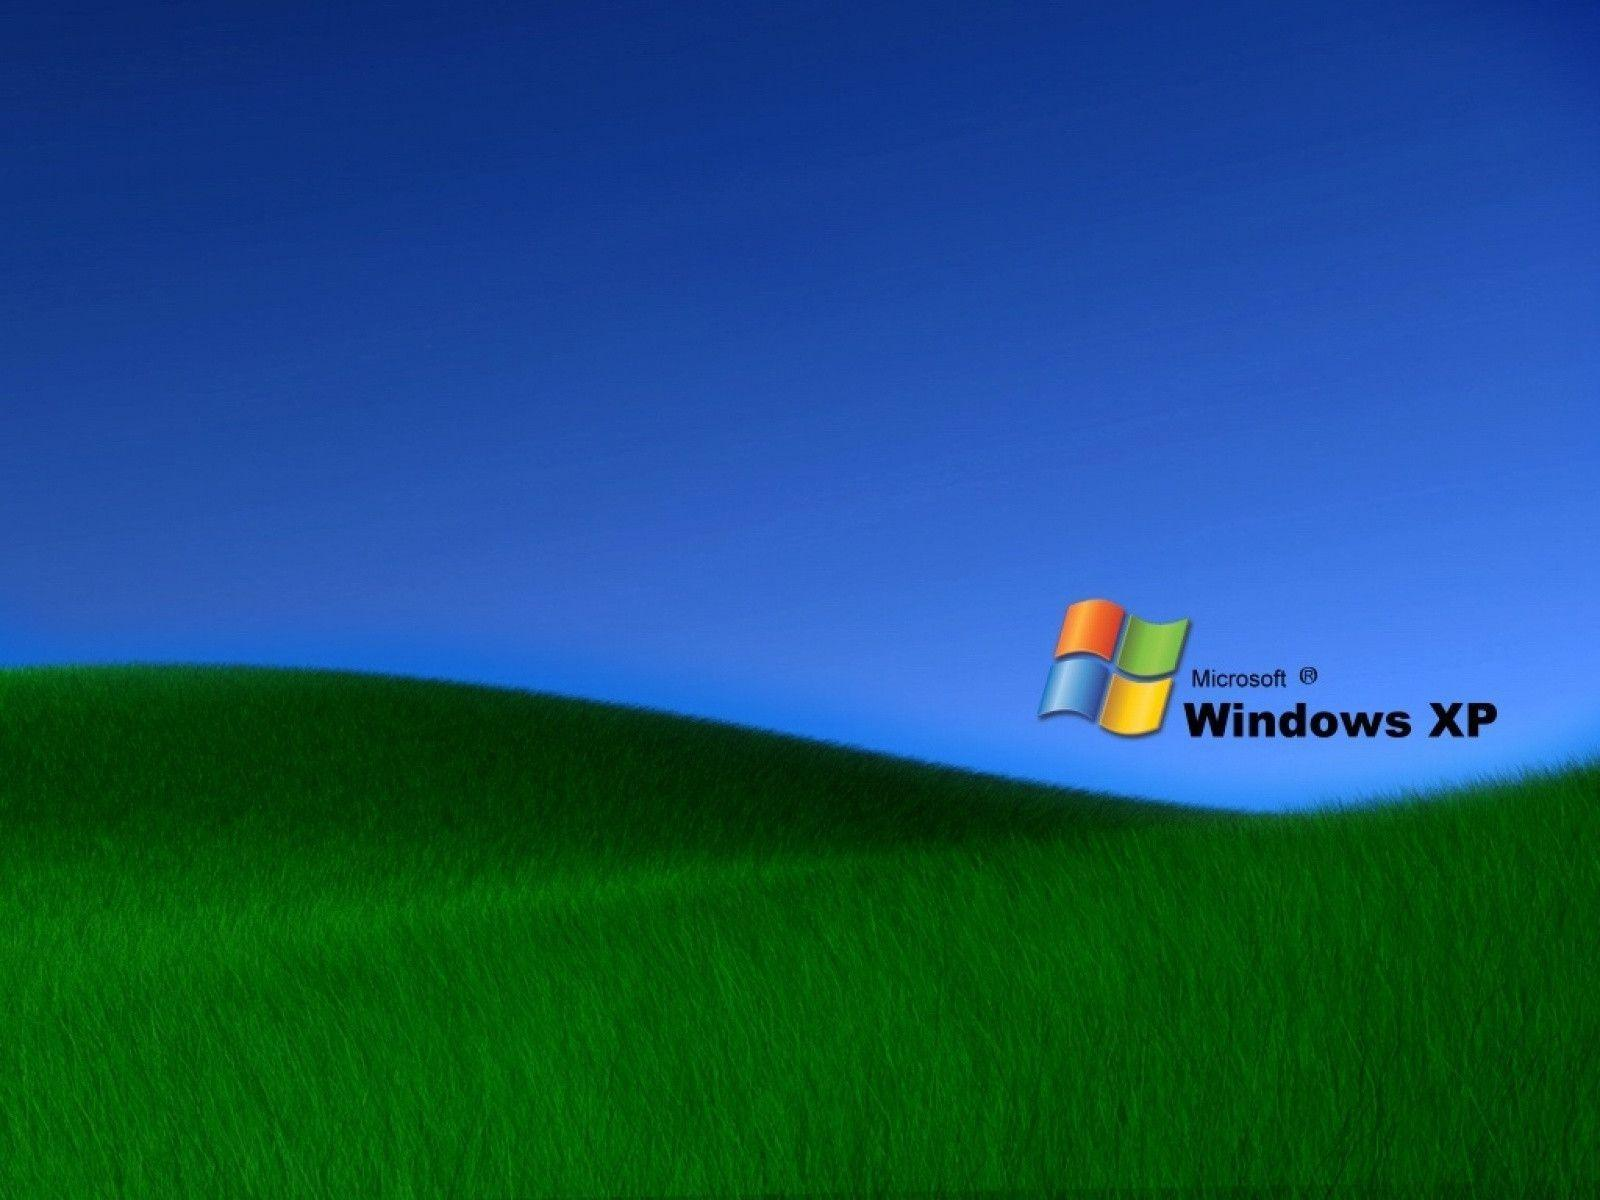 free xp wallpapers download - photo #17